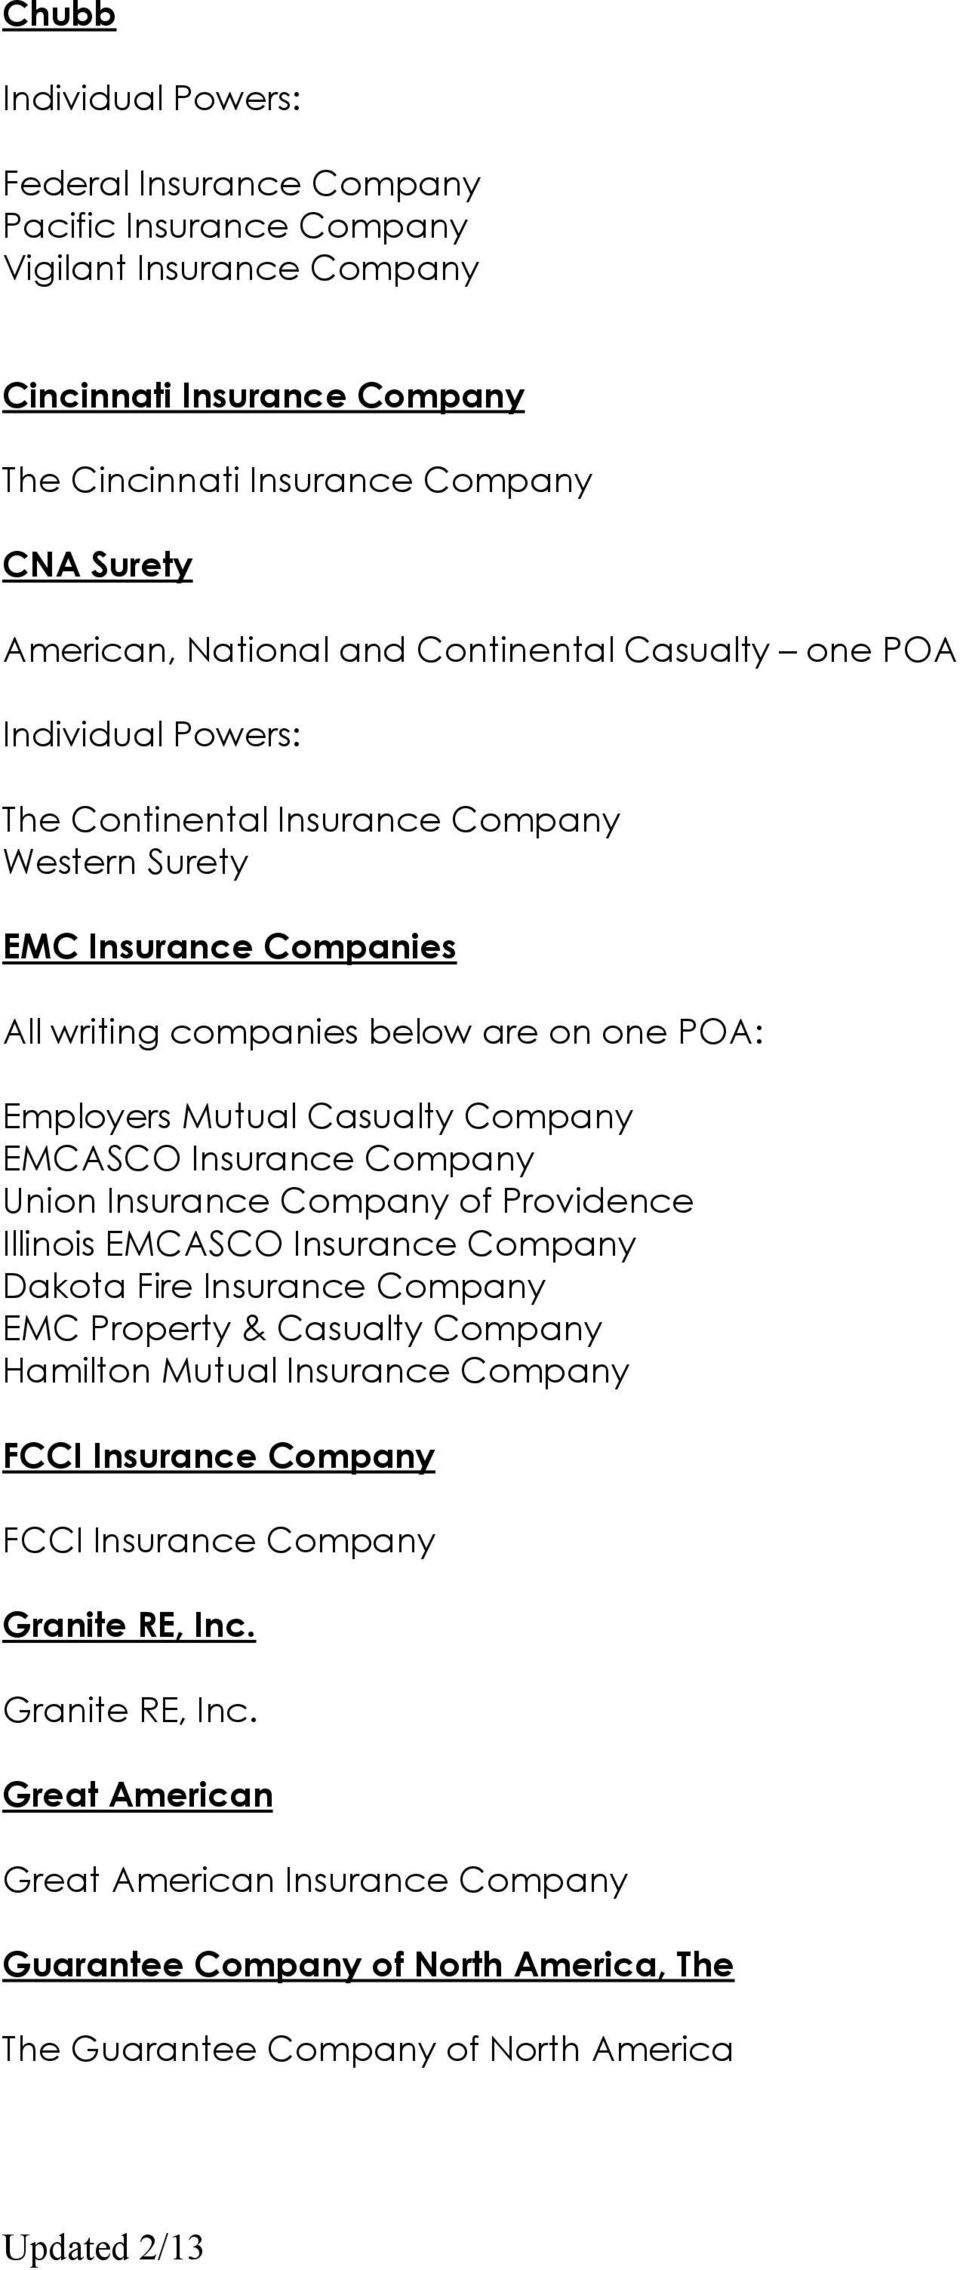 Insurance Company of Providence Illinois EMCASCO Insurance Company Dakota Fire Insurance Company EMC Property & Casualty Company Hamilton Mutual Insurance Company FCCI Insurance